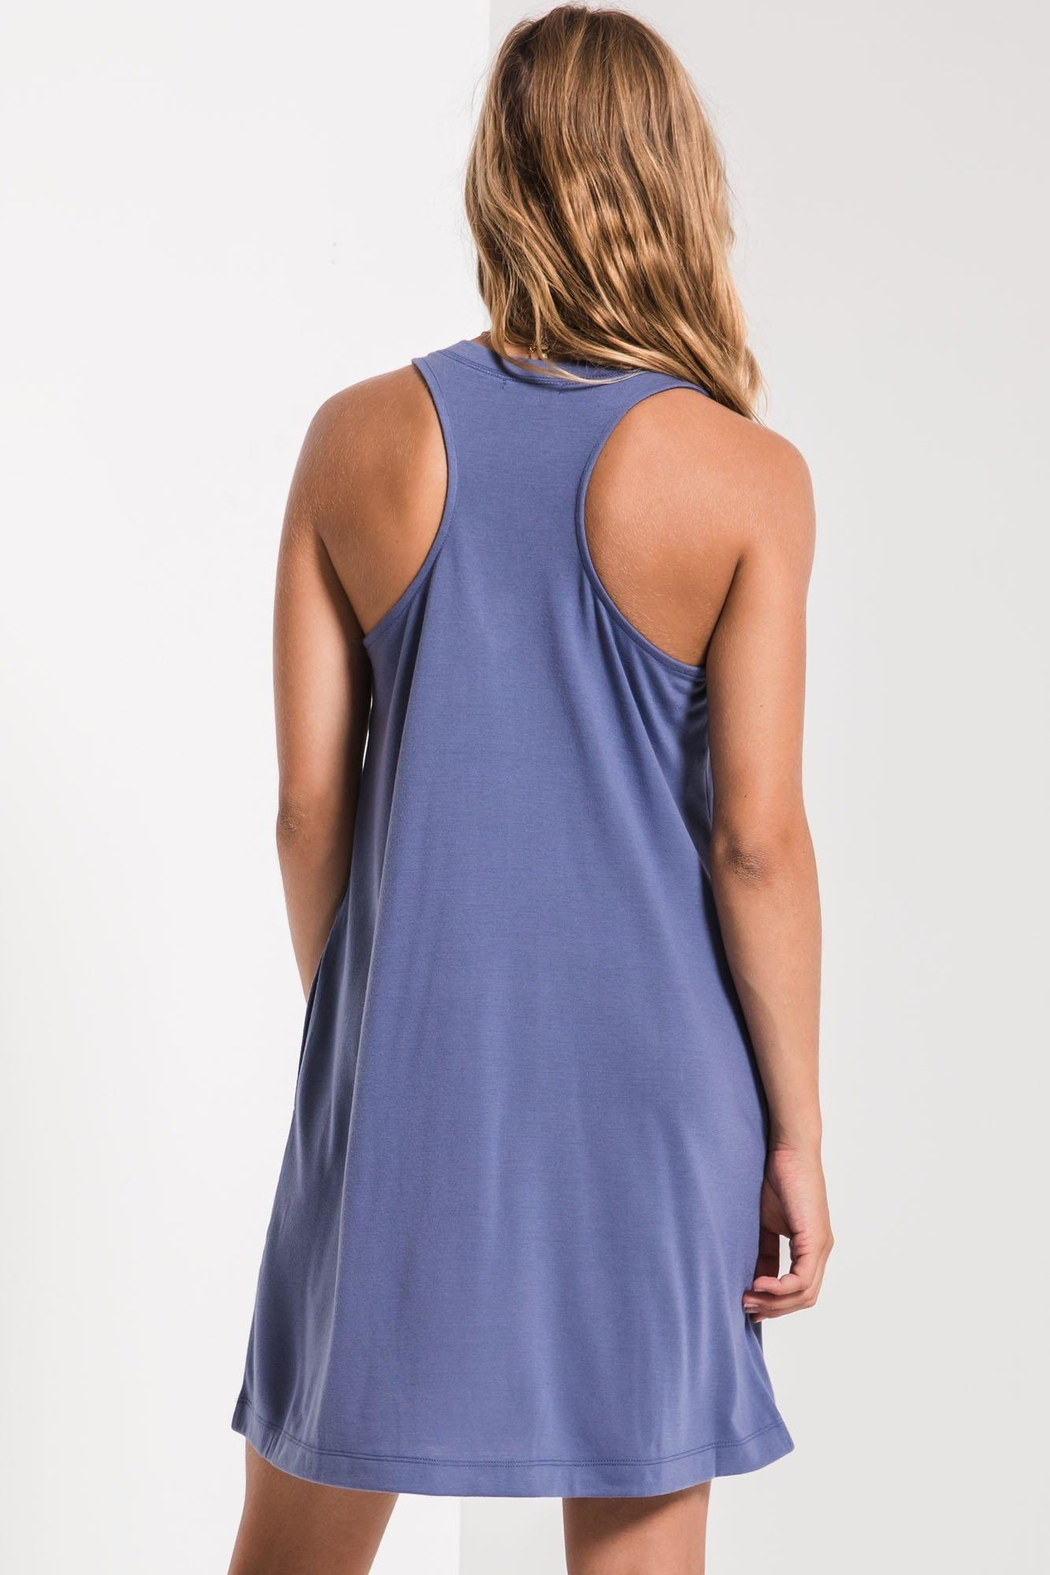 z supply City Tank Dress - Front Full Image